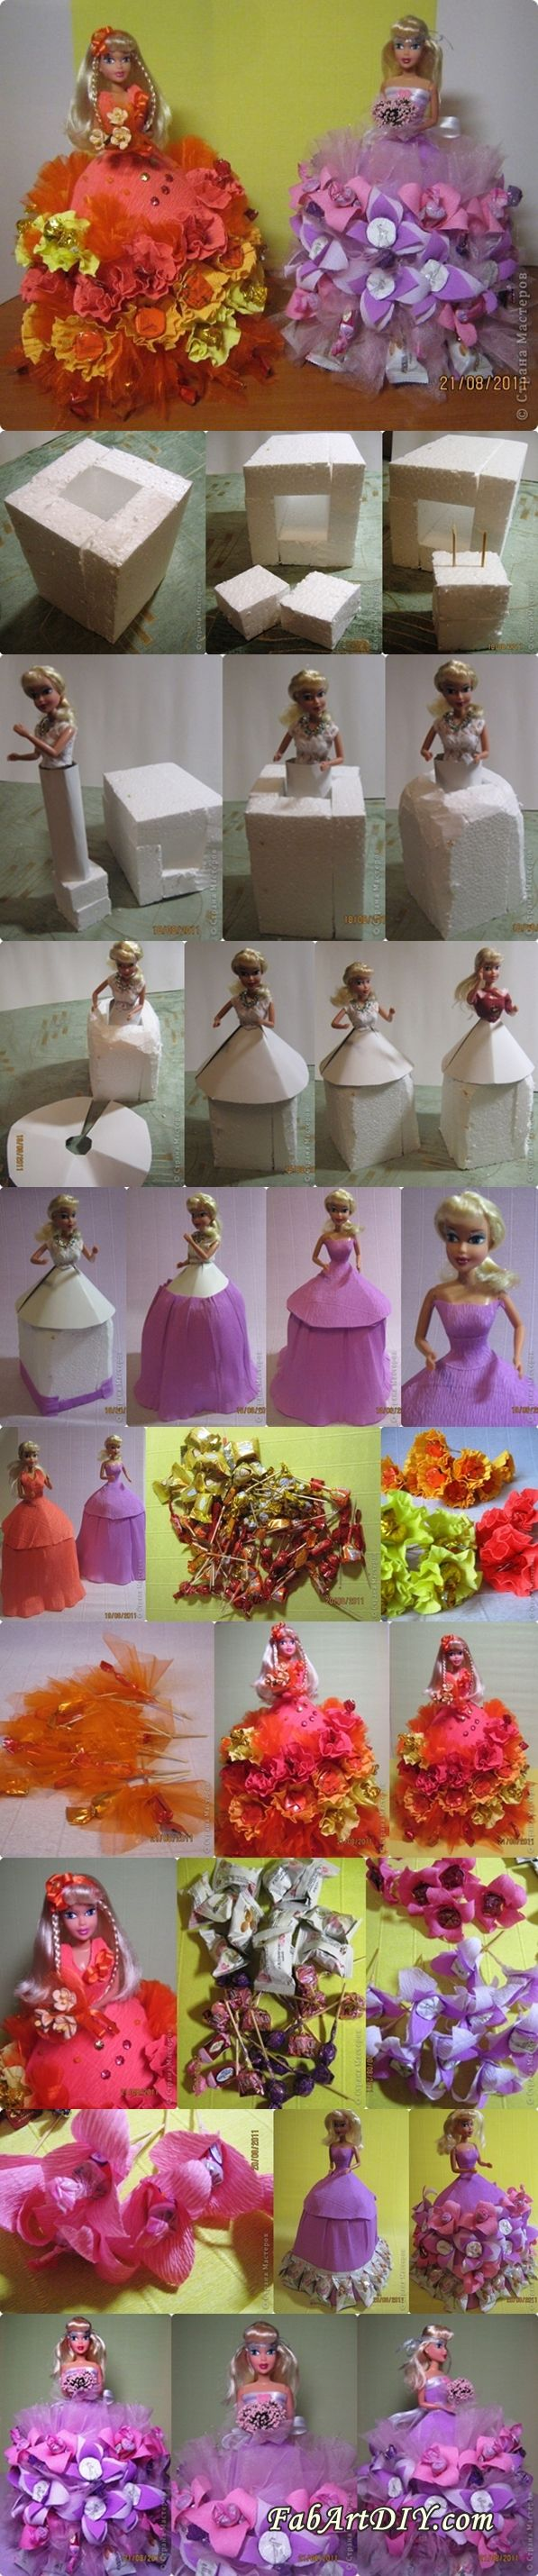 Chocolate bouquet on pinterest candy flowers bouquet of chocolate - Diy Chocolate Wrapped Flower Barbie Dress Http Tagblog Me Diy Chocolate Bouquetcandy